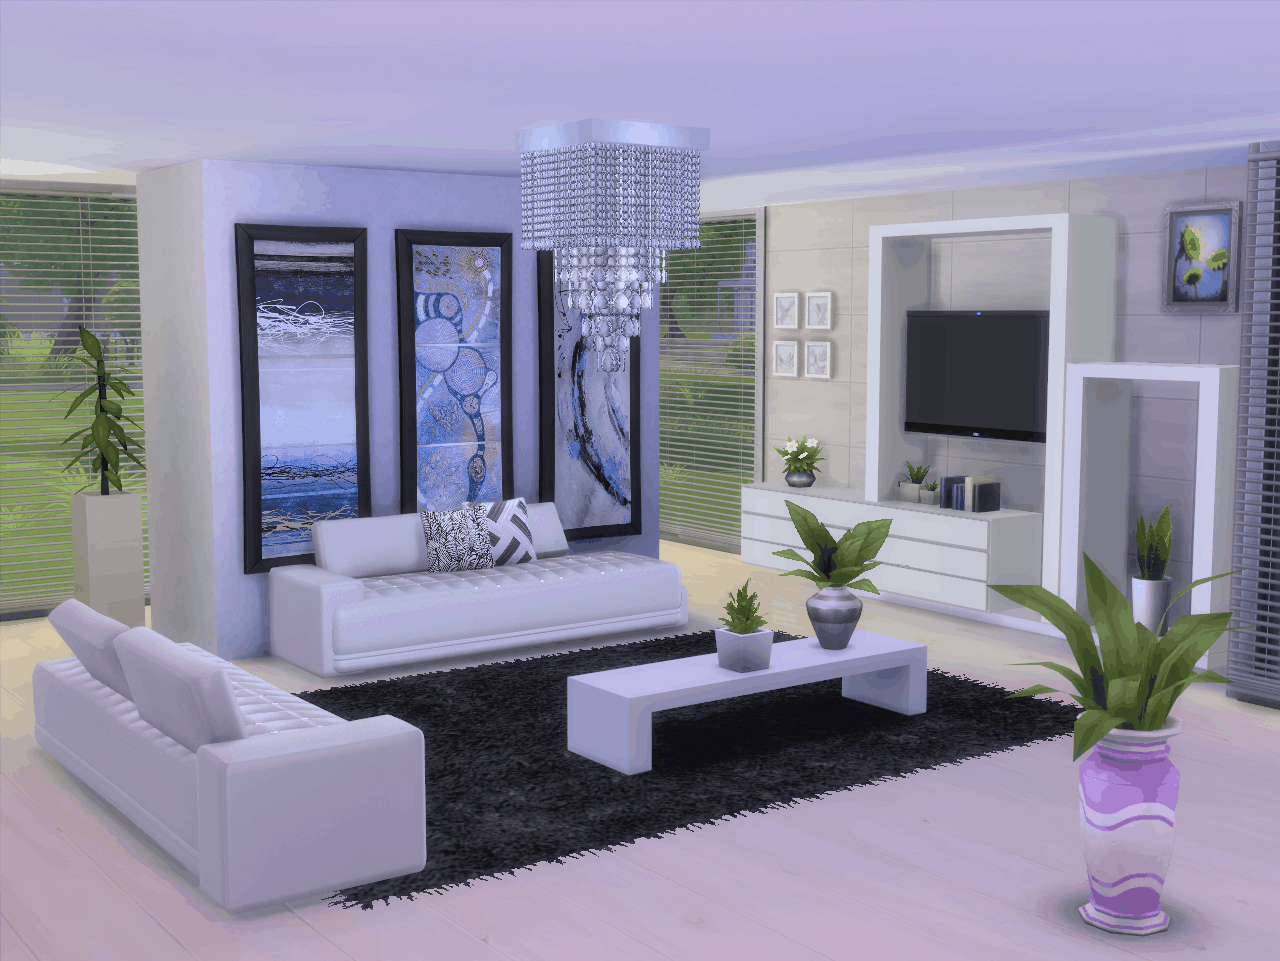 Salon Sims 4 In 2020 Sims House Living Room Sims 4 Sims 4 Cc Furniture Living Rooms